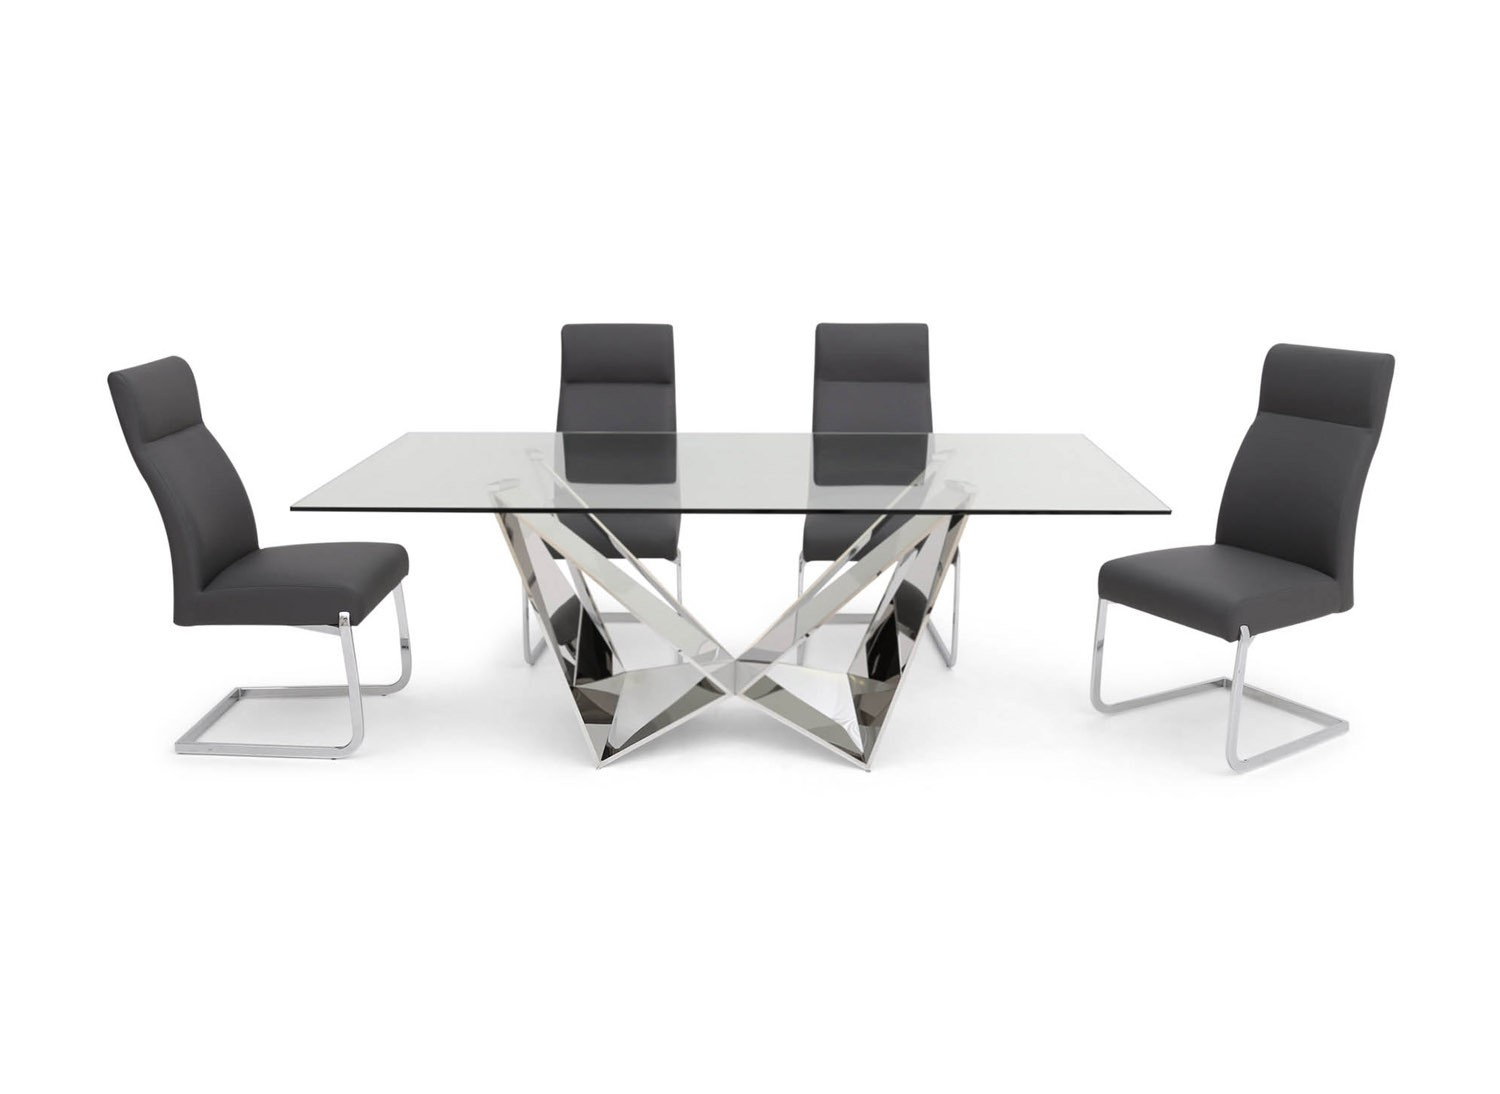 https://www.firstfurniture.co.uk/pub/media/catalog/product/f/l/florentina_dining_table_dante_chairs_grey_6.jpg